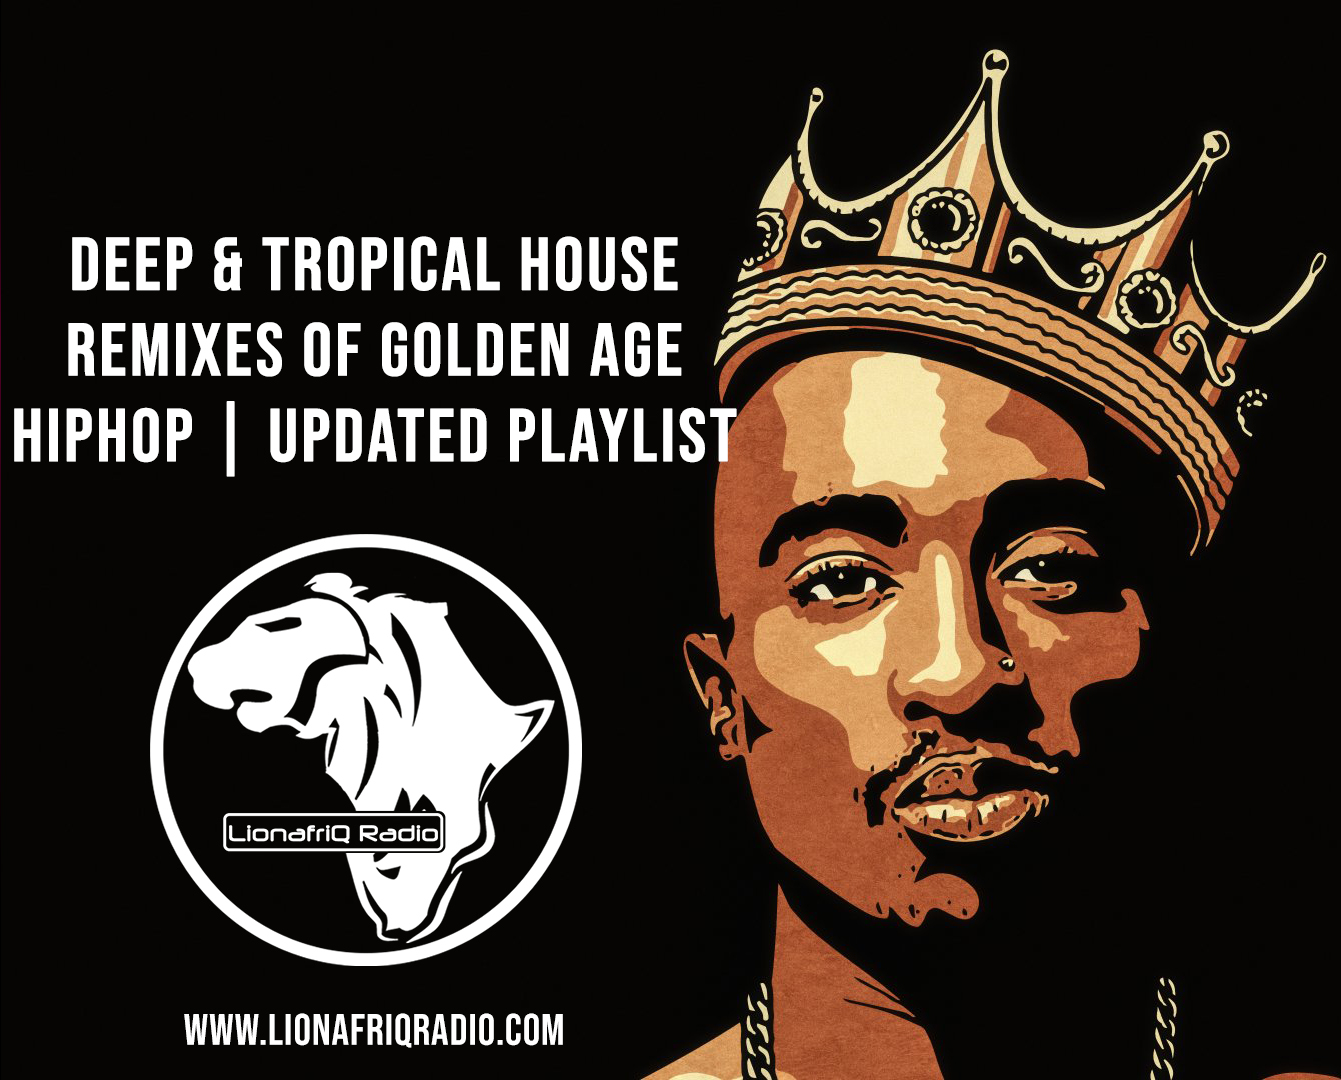 Deep & Tropical House Remixes of Golden Age HipHop | Updated Playlist